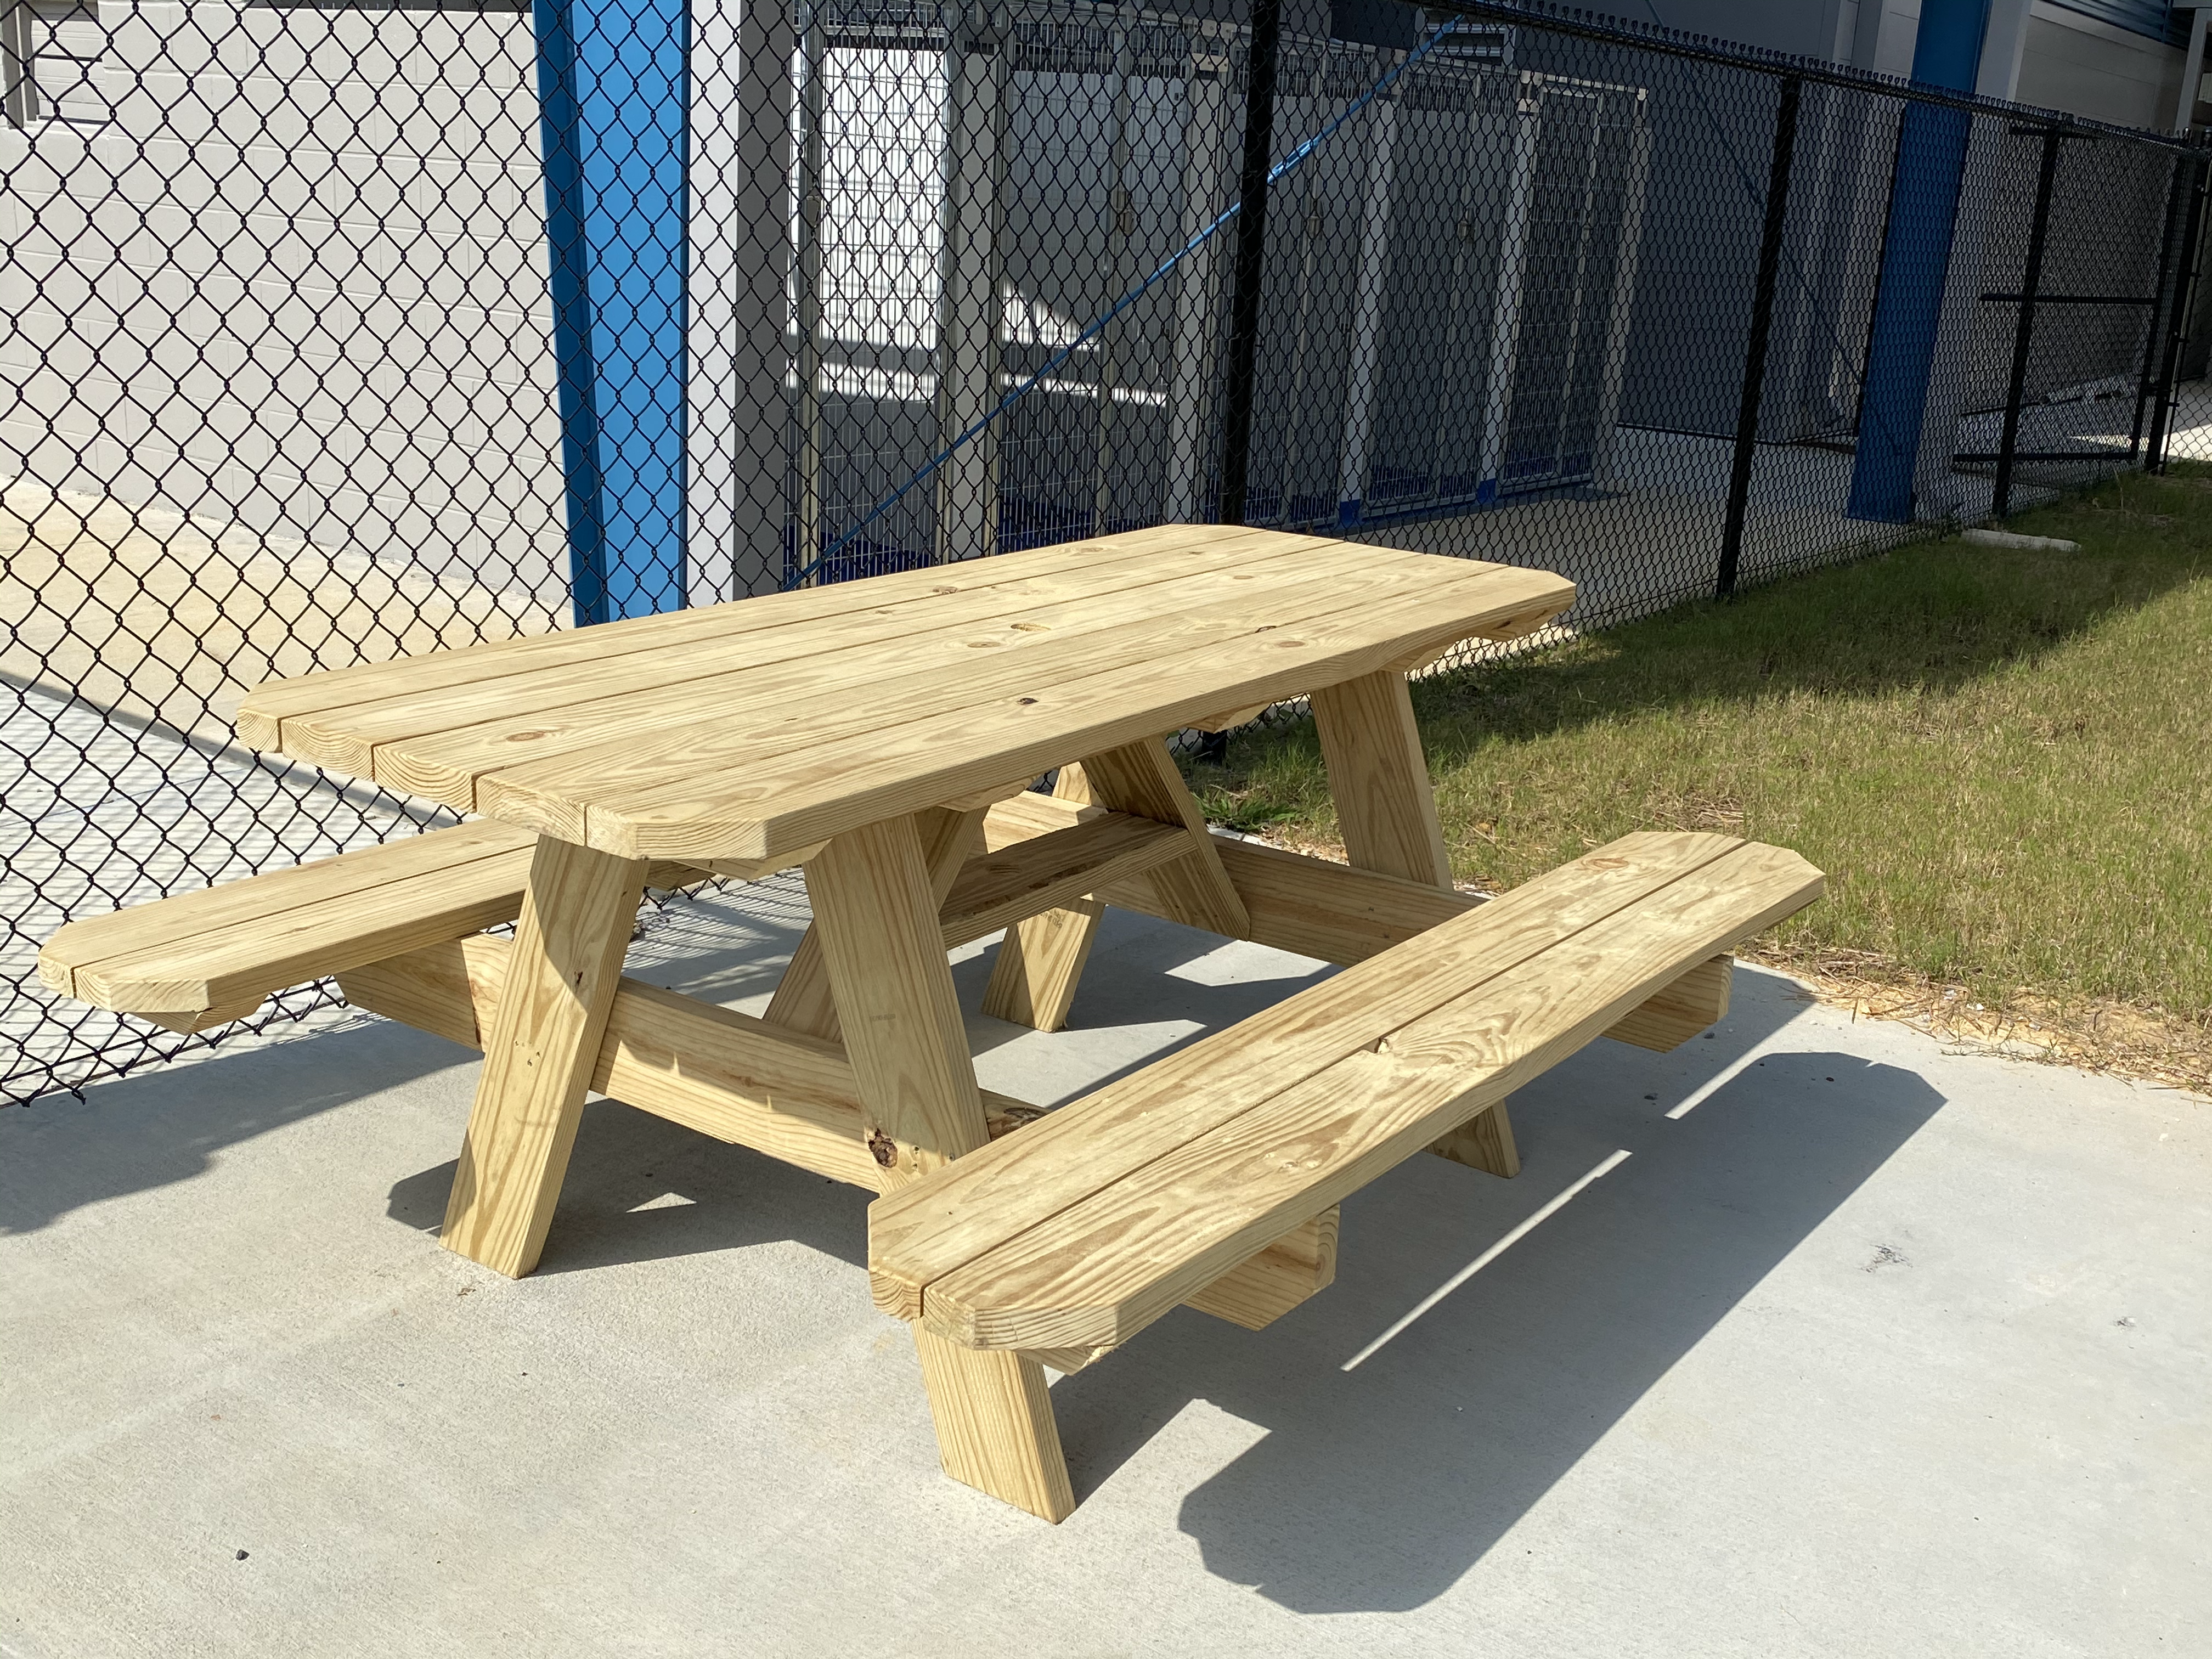 Benches and Tables donated by Lancaster YouthBuild